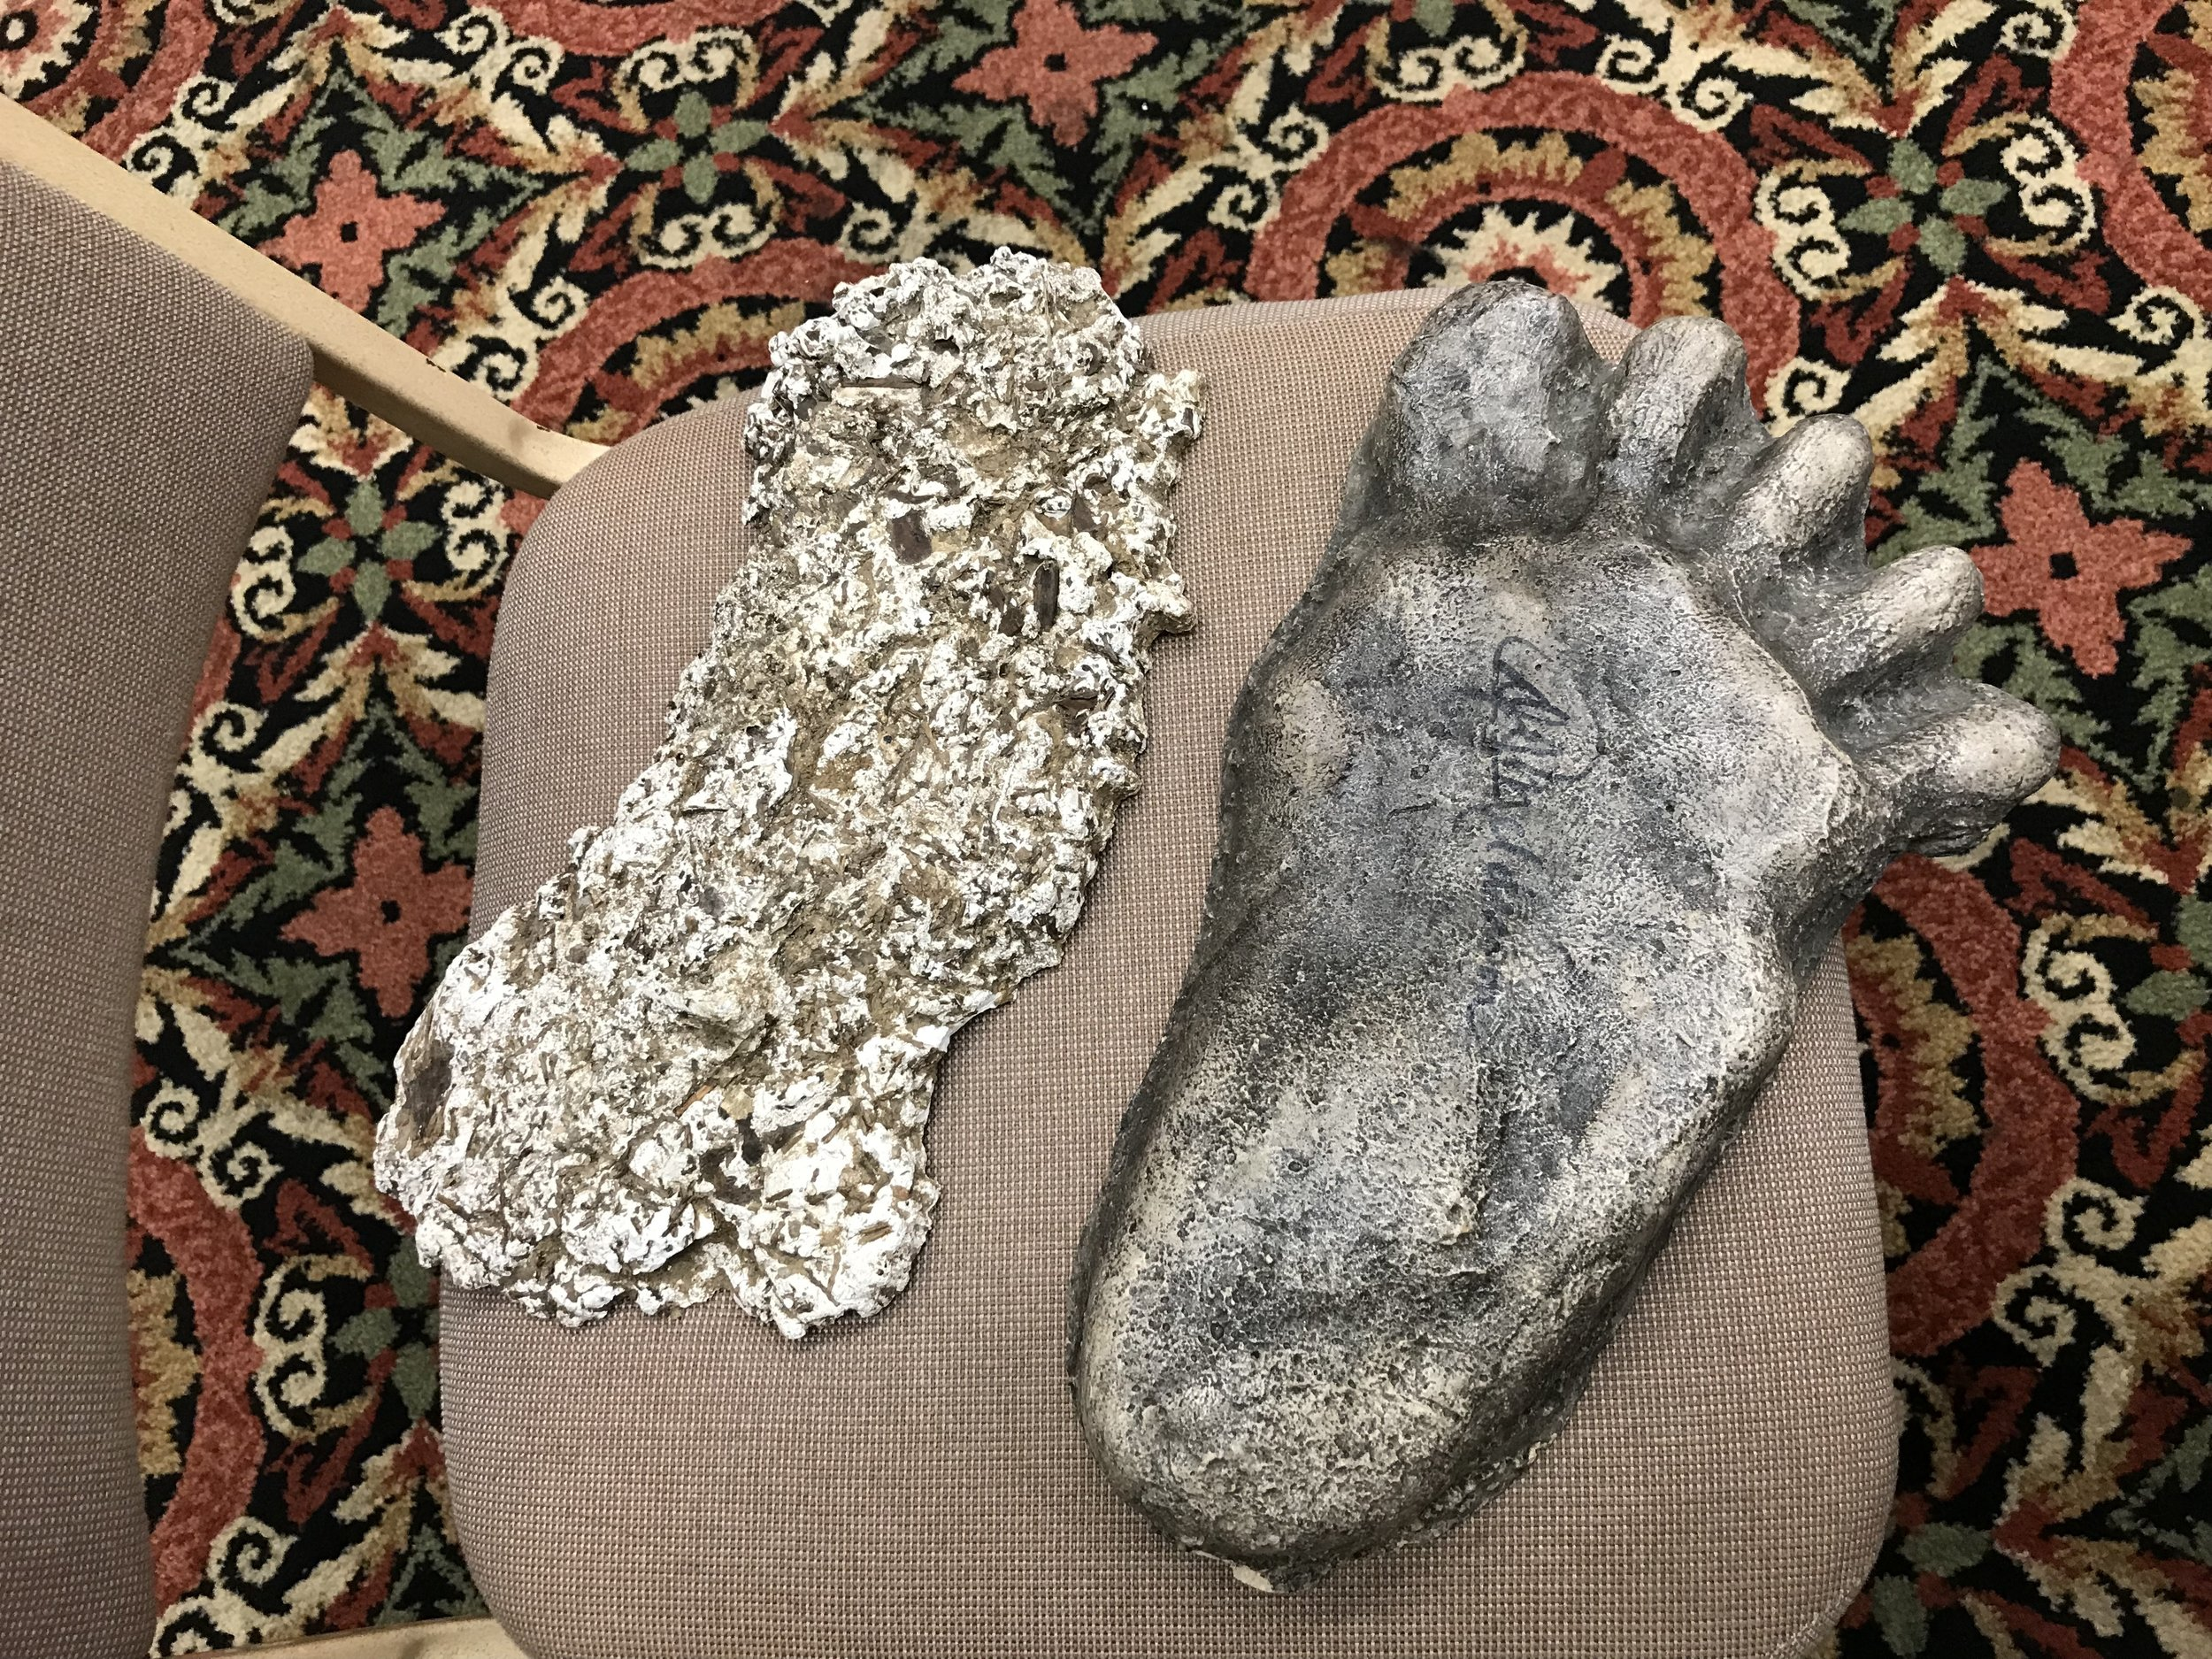 An actual Bigfoot cast alongside an original footprint cast copy that  Jeffrey  brought as props.